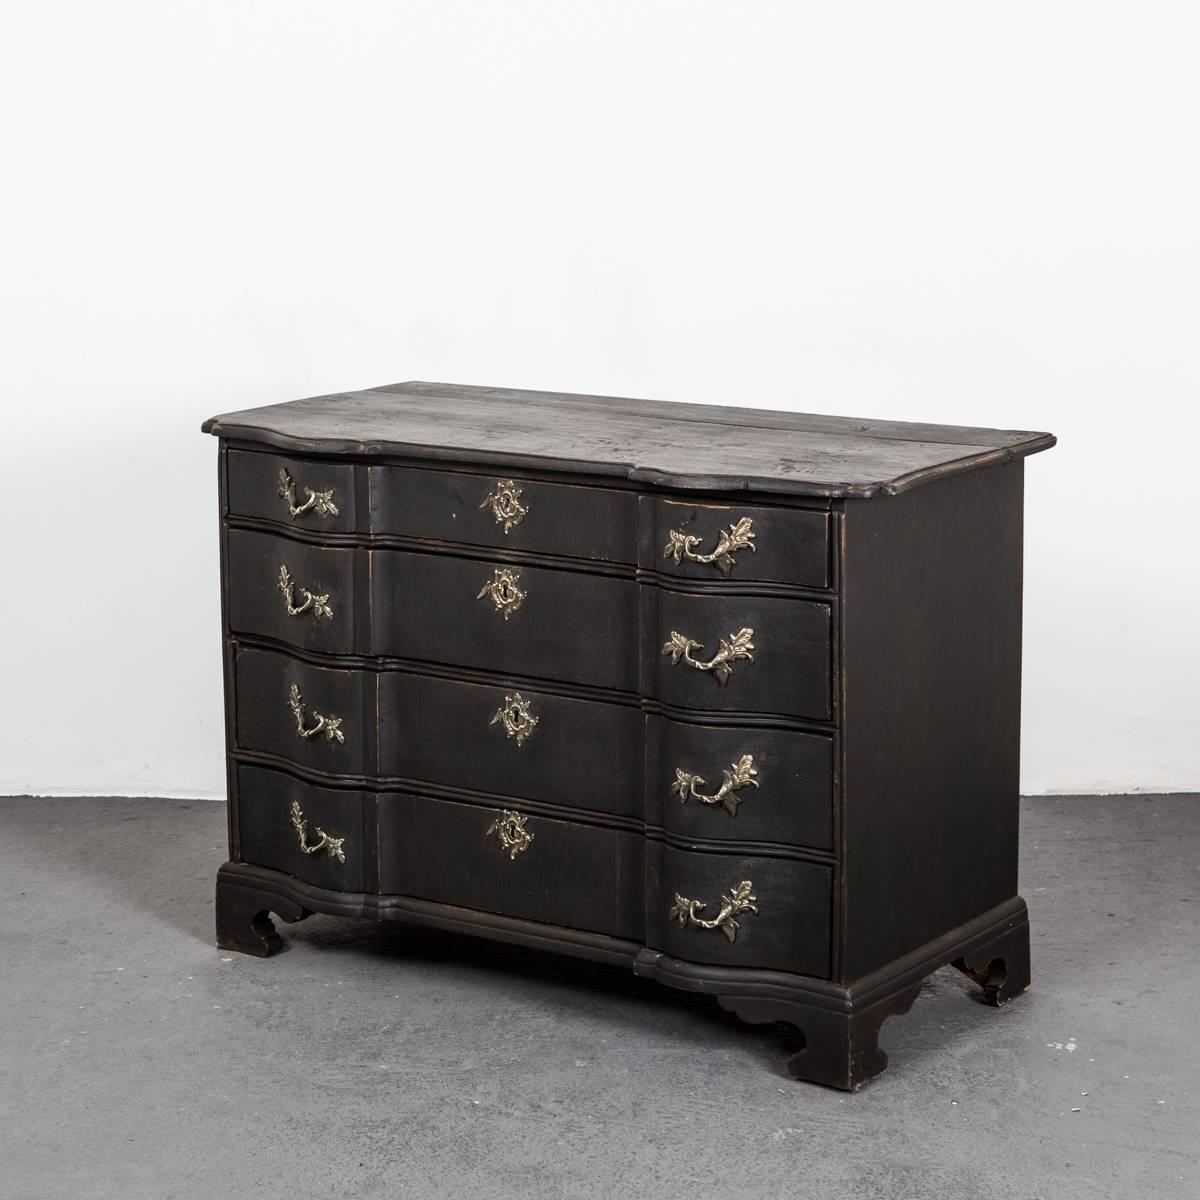 chest of drawers barock period for sale at 1stdibs. Black Bedroom Furniture Sets. Home Design Ideas